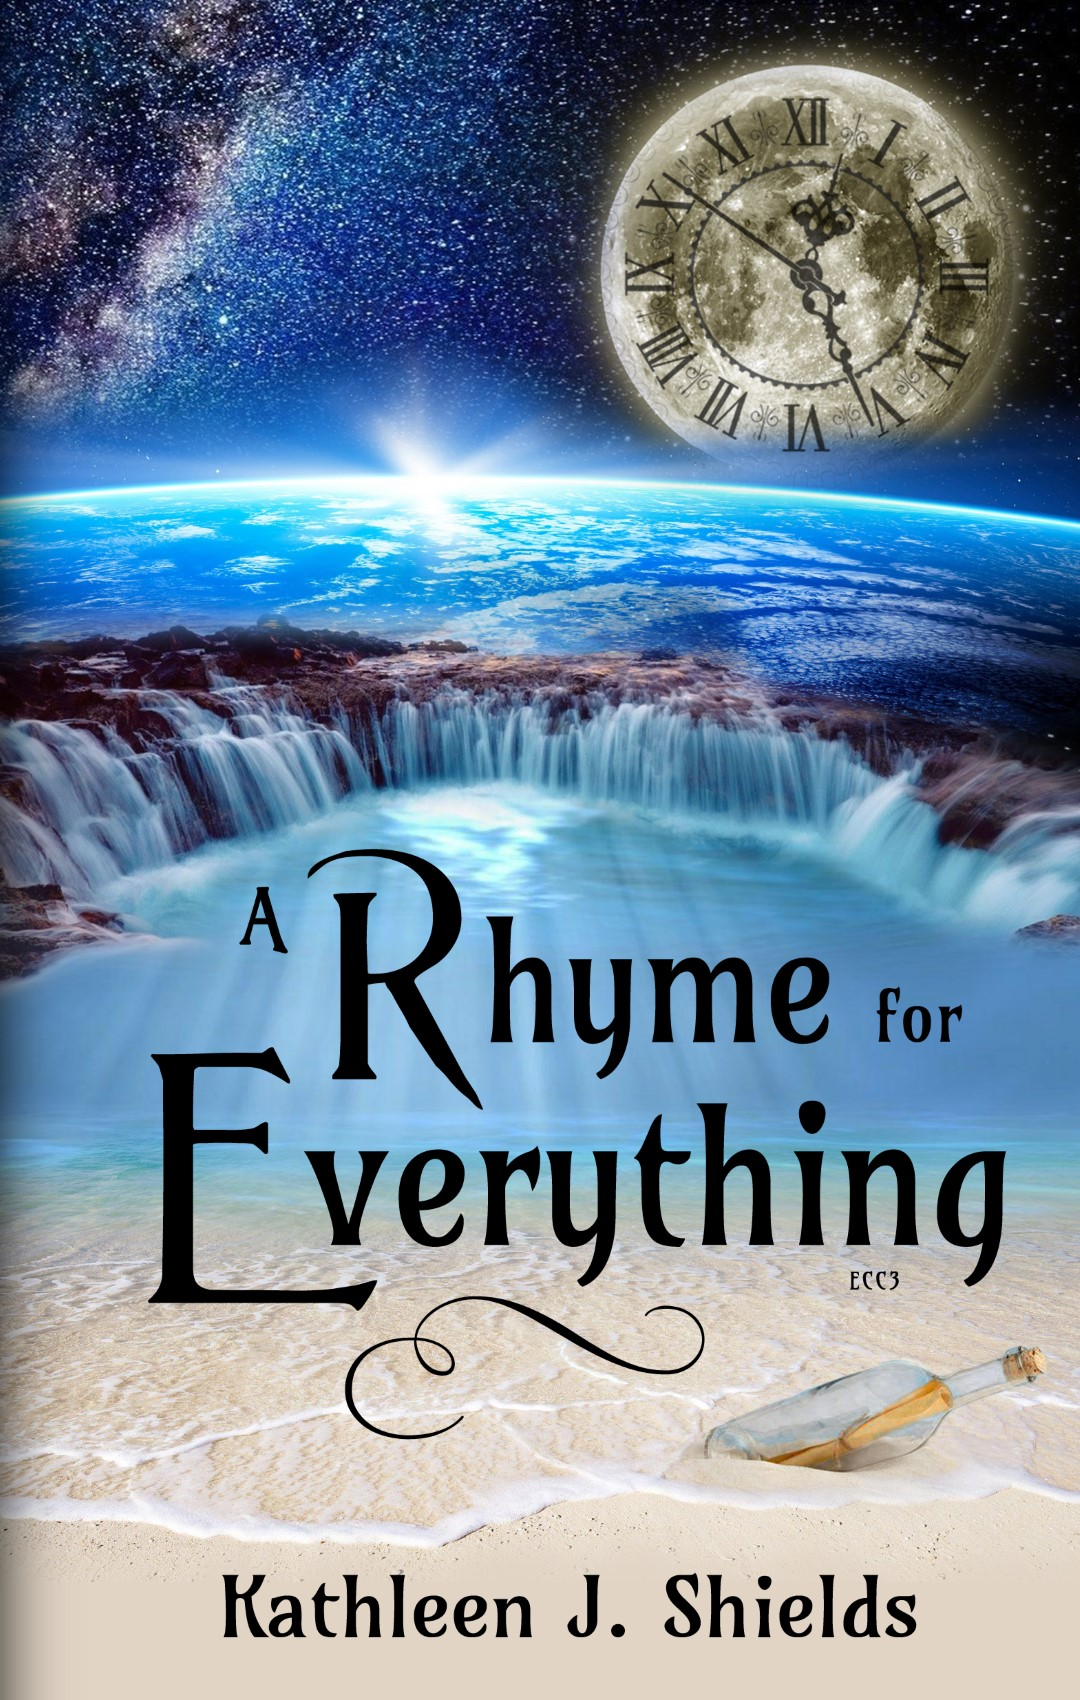 A Rhyme for Everything – Poetry book by author Kathleen J. Shields